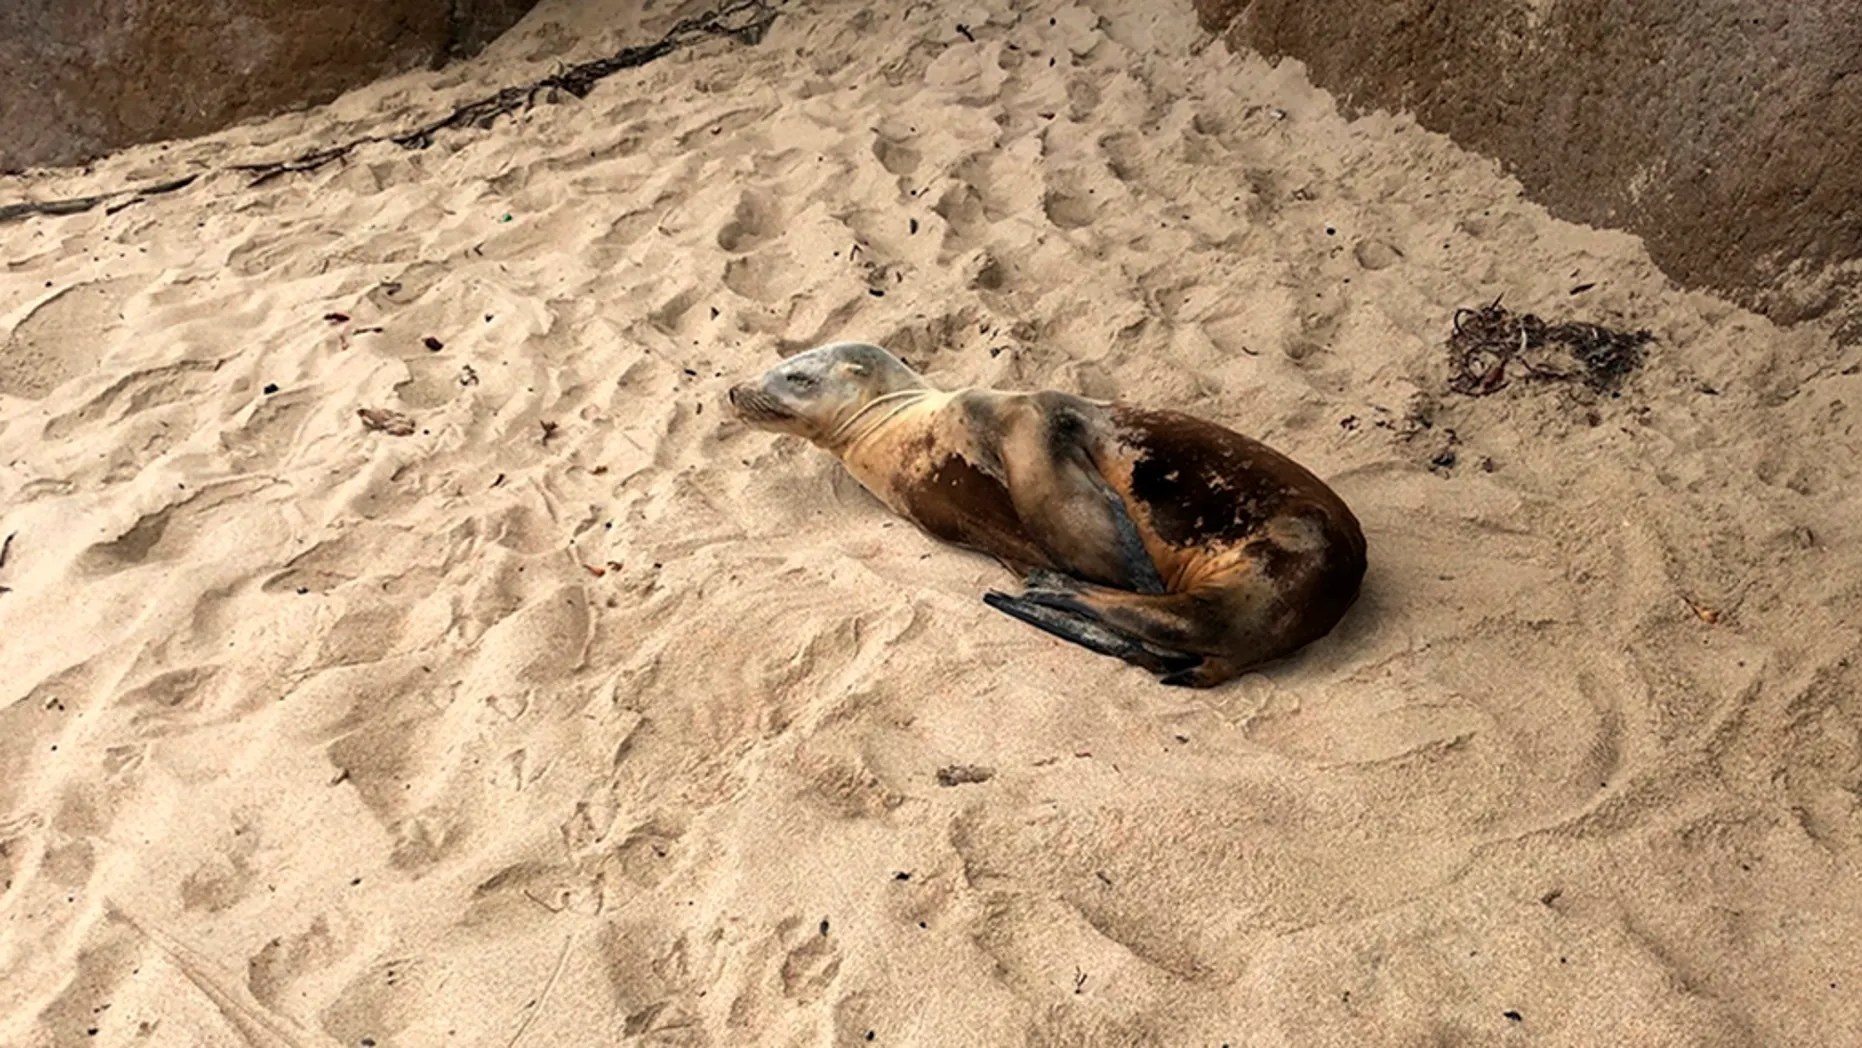 This summer 2018 photo provided by the Marine Mammal Center shows a California sea lion prior to its rescue at a Monterey County beach along the central California coast. The rescue center says California sea lions are coming down with a potentially fatal bacterial infection in near-record numbers. (AP/Marine Mammal Center)